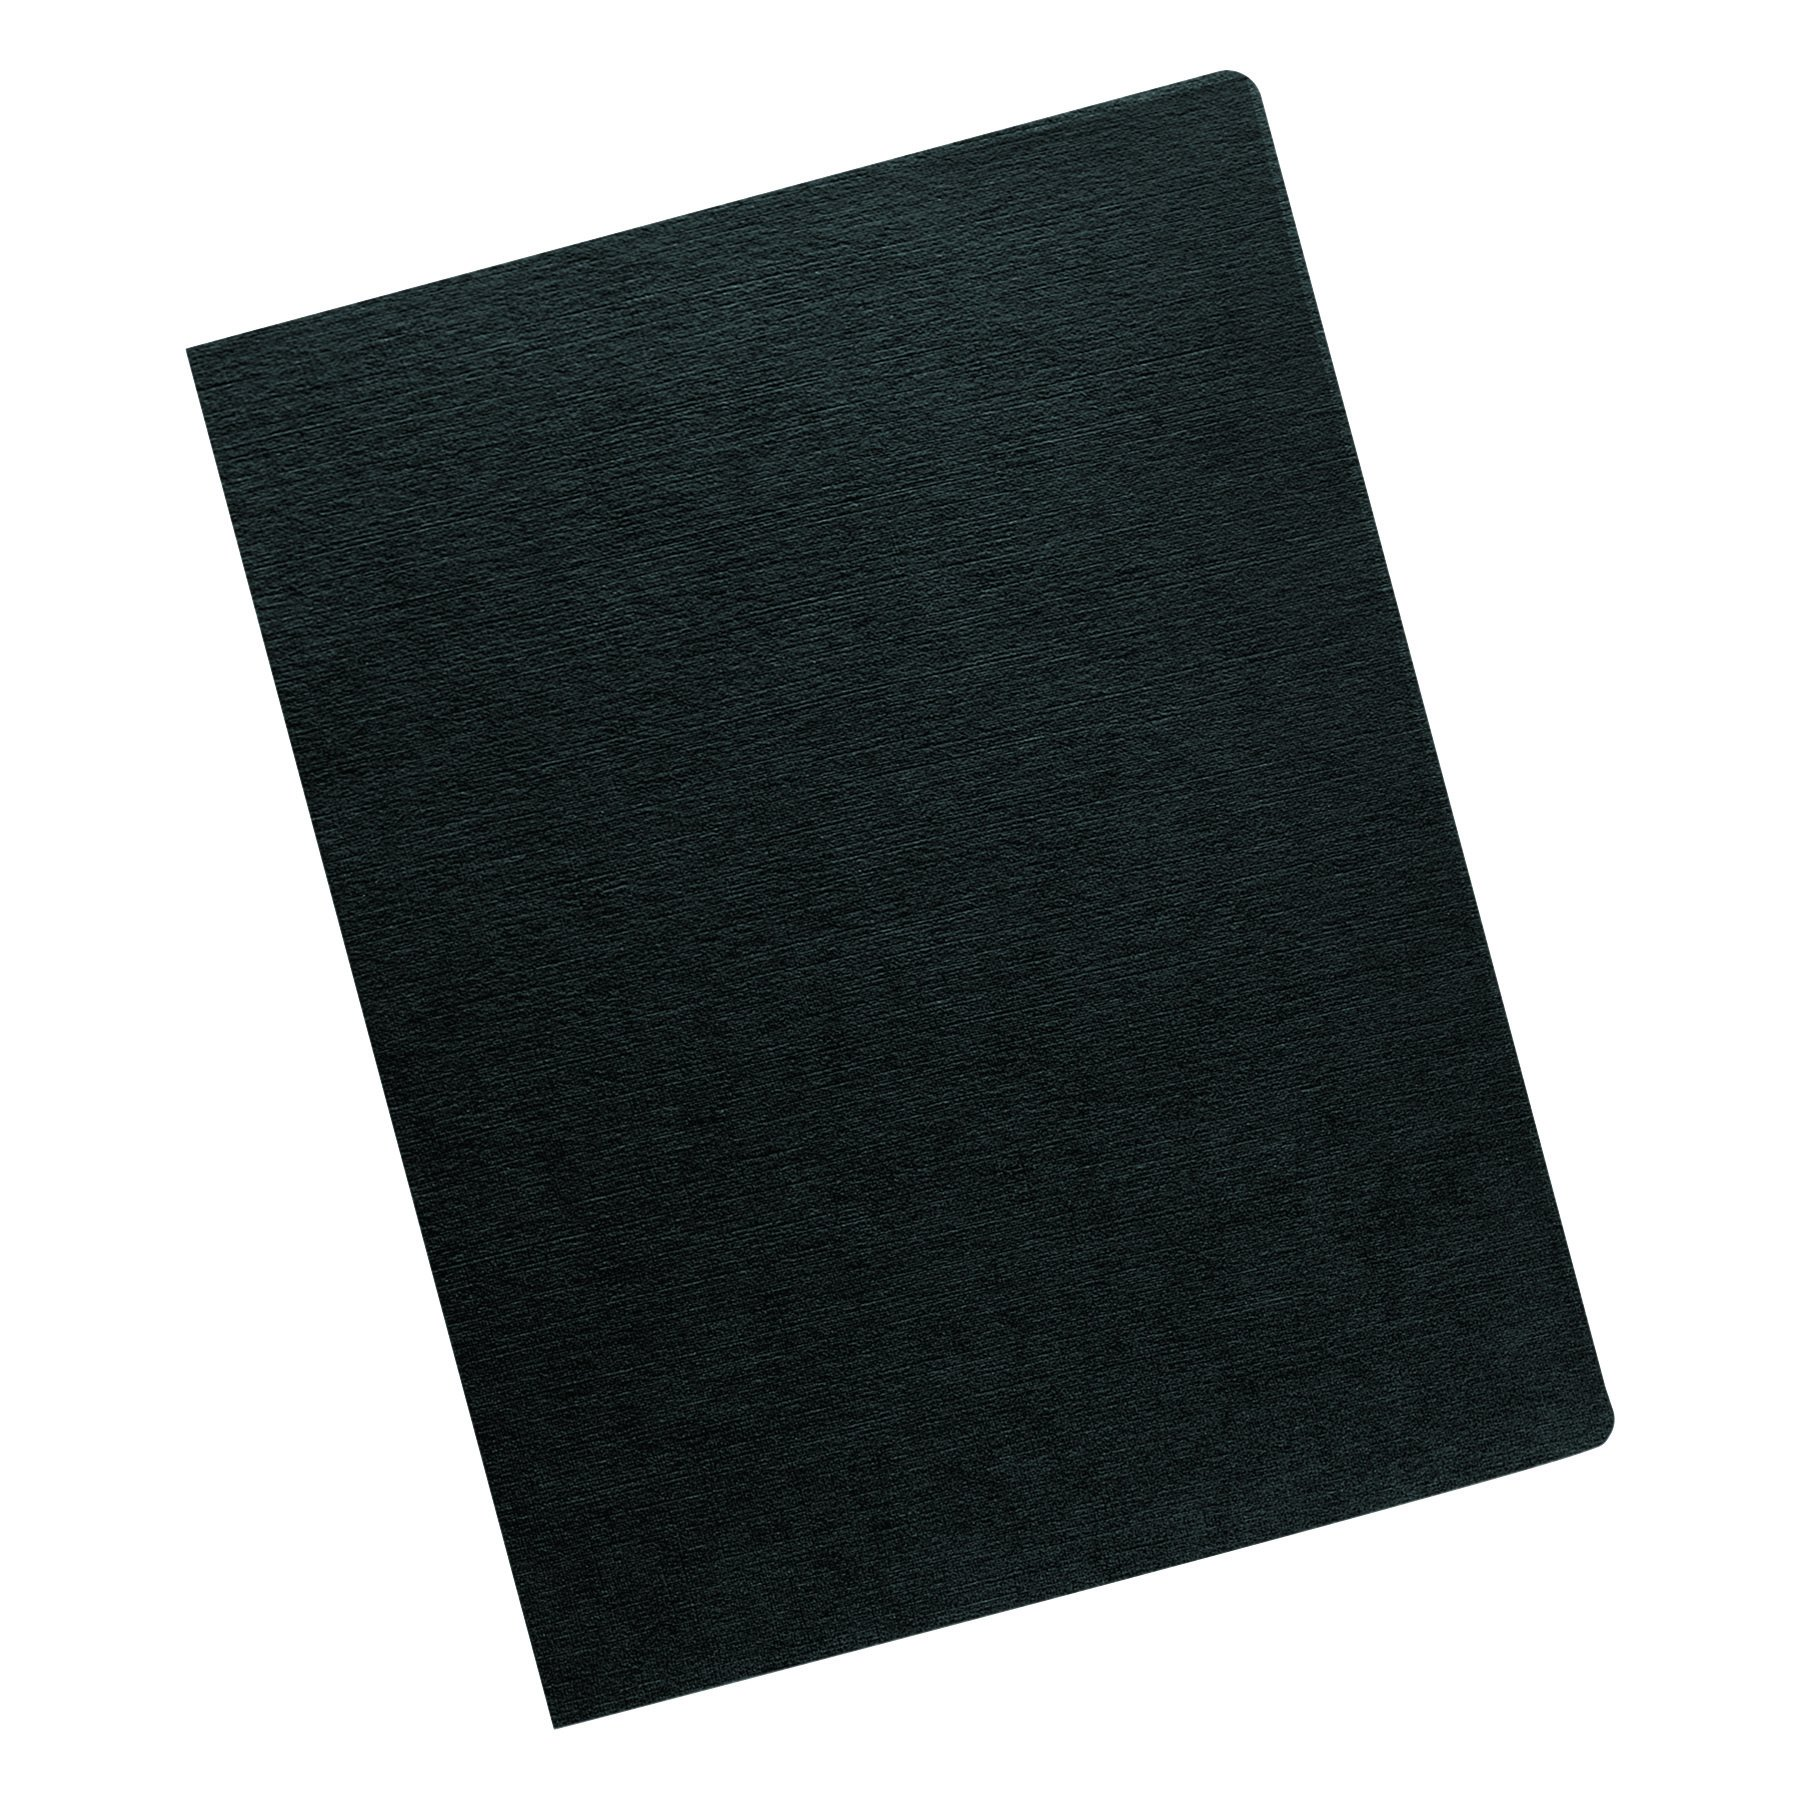 Fellowes 52115 Linen Texture Binding System Covers, 11-1/4 x 8-3/4, Black (Pack of 200) by Fellowes (Image #1)